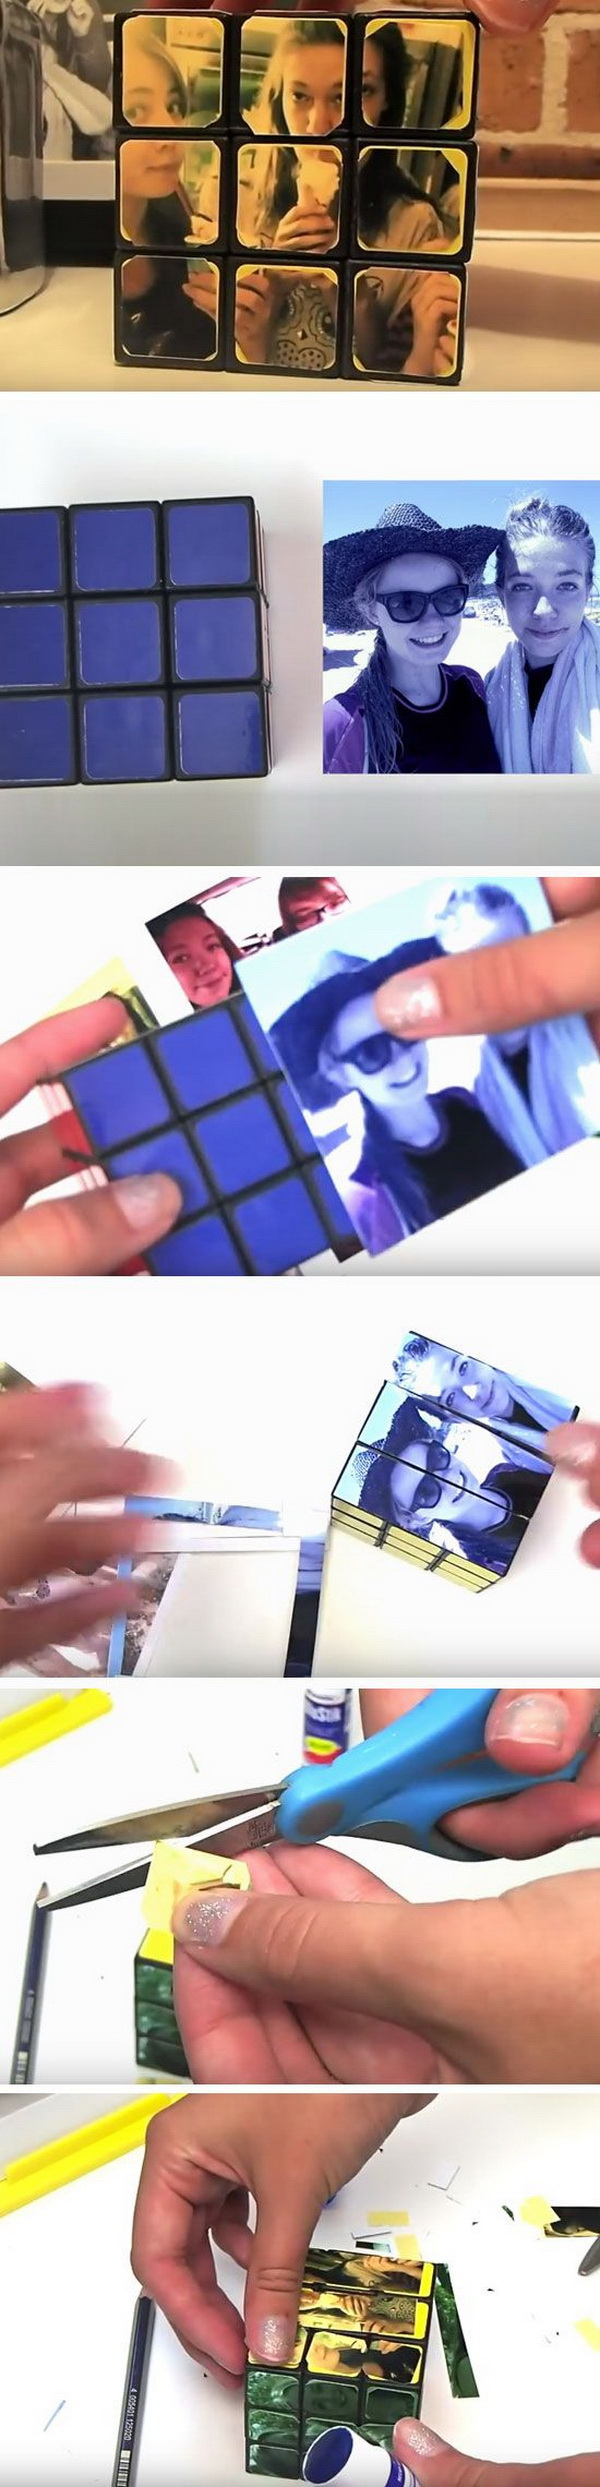 Rubikes Cube Photos. Customized rubik's cube with pictures! It will be a very meaningful gift for everyone in your life!